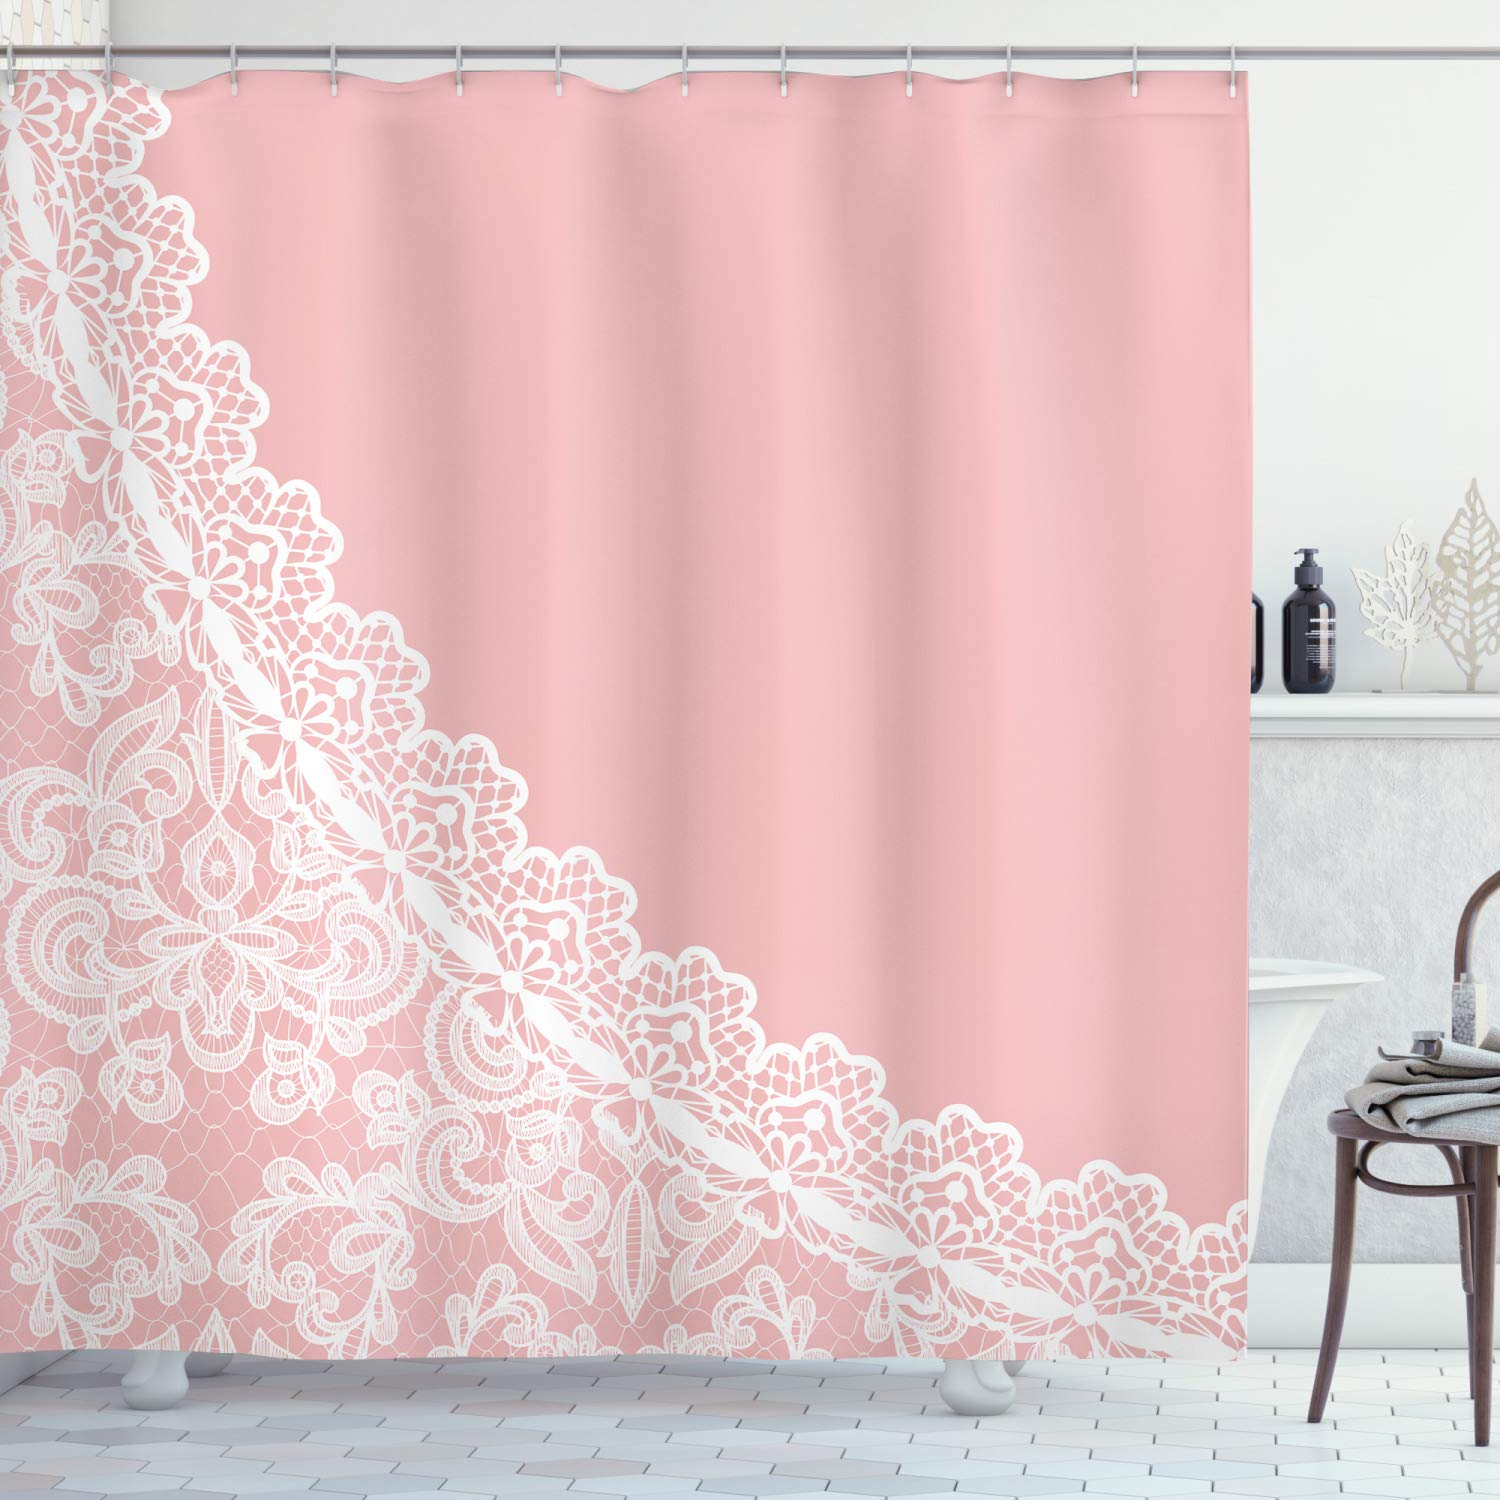 """Ambesonne Pink and White Shower Curtain, Lace Old Fashioned Border on Pink Color Wedding Theme Feminine Print, Cloth Fabric Bathroom Decor Set with Hooks, 84"""" Long Extra, Pale Pink"""